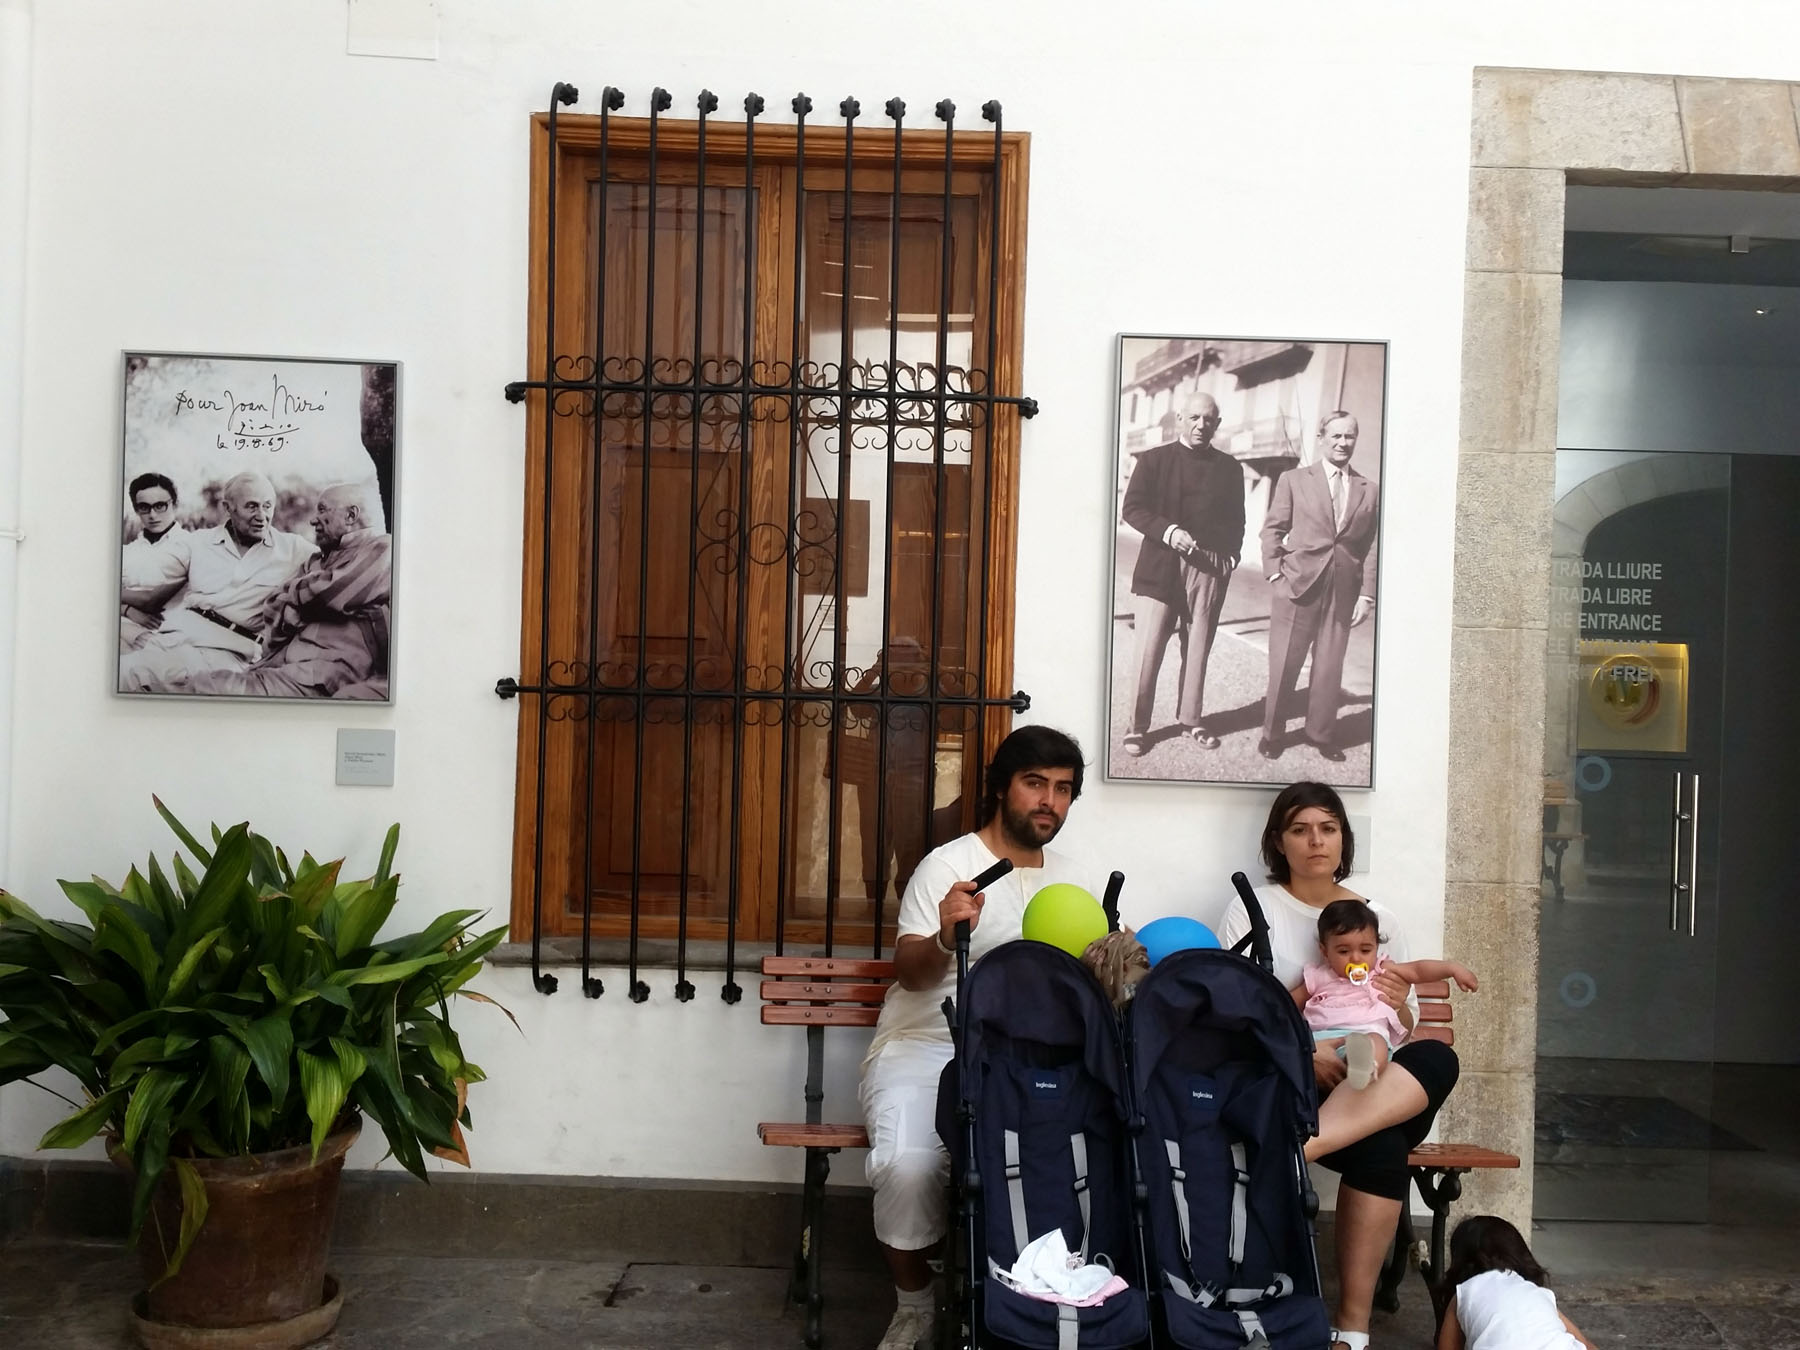 Passengers waiting for the train in Soller can browse a free museum featuring Pablo Picasso and Joan Miro, who visited the town together in the 1960s. Craigslegz.com